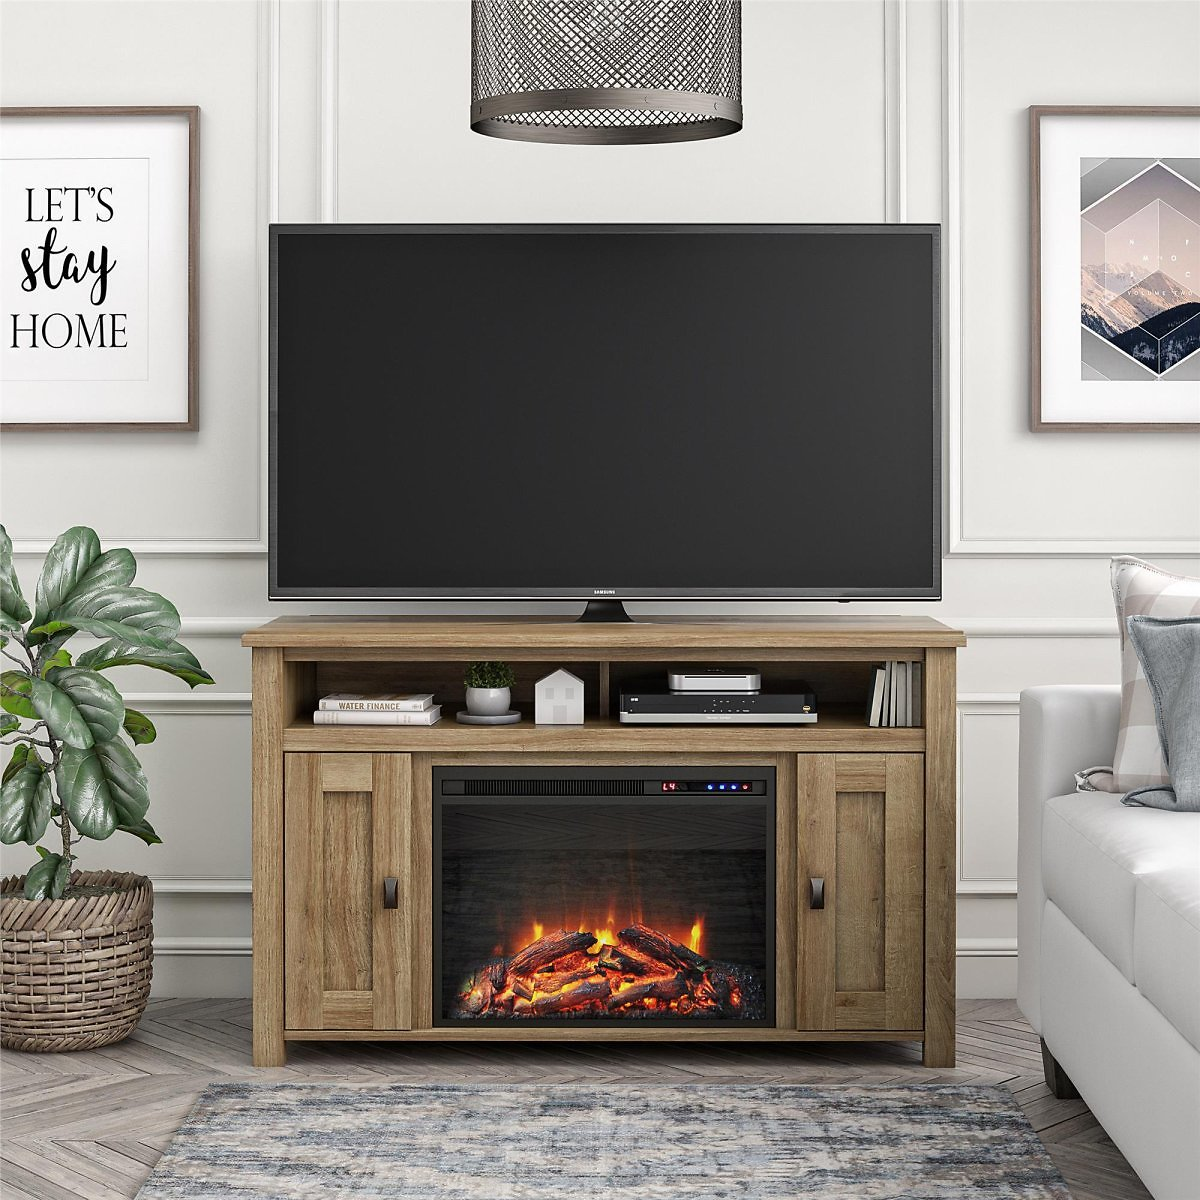 Ameriwood Home Falls Creek Media Fireplace for TVs Up to 50